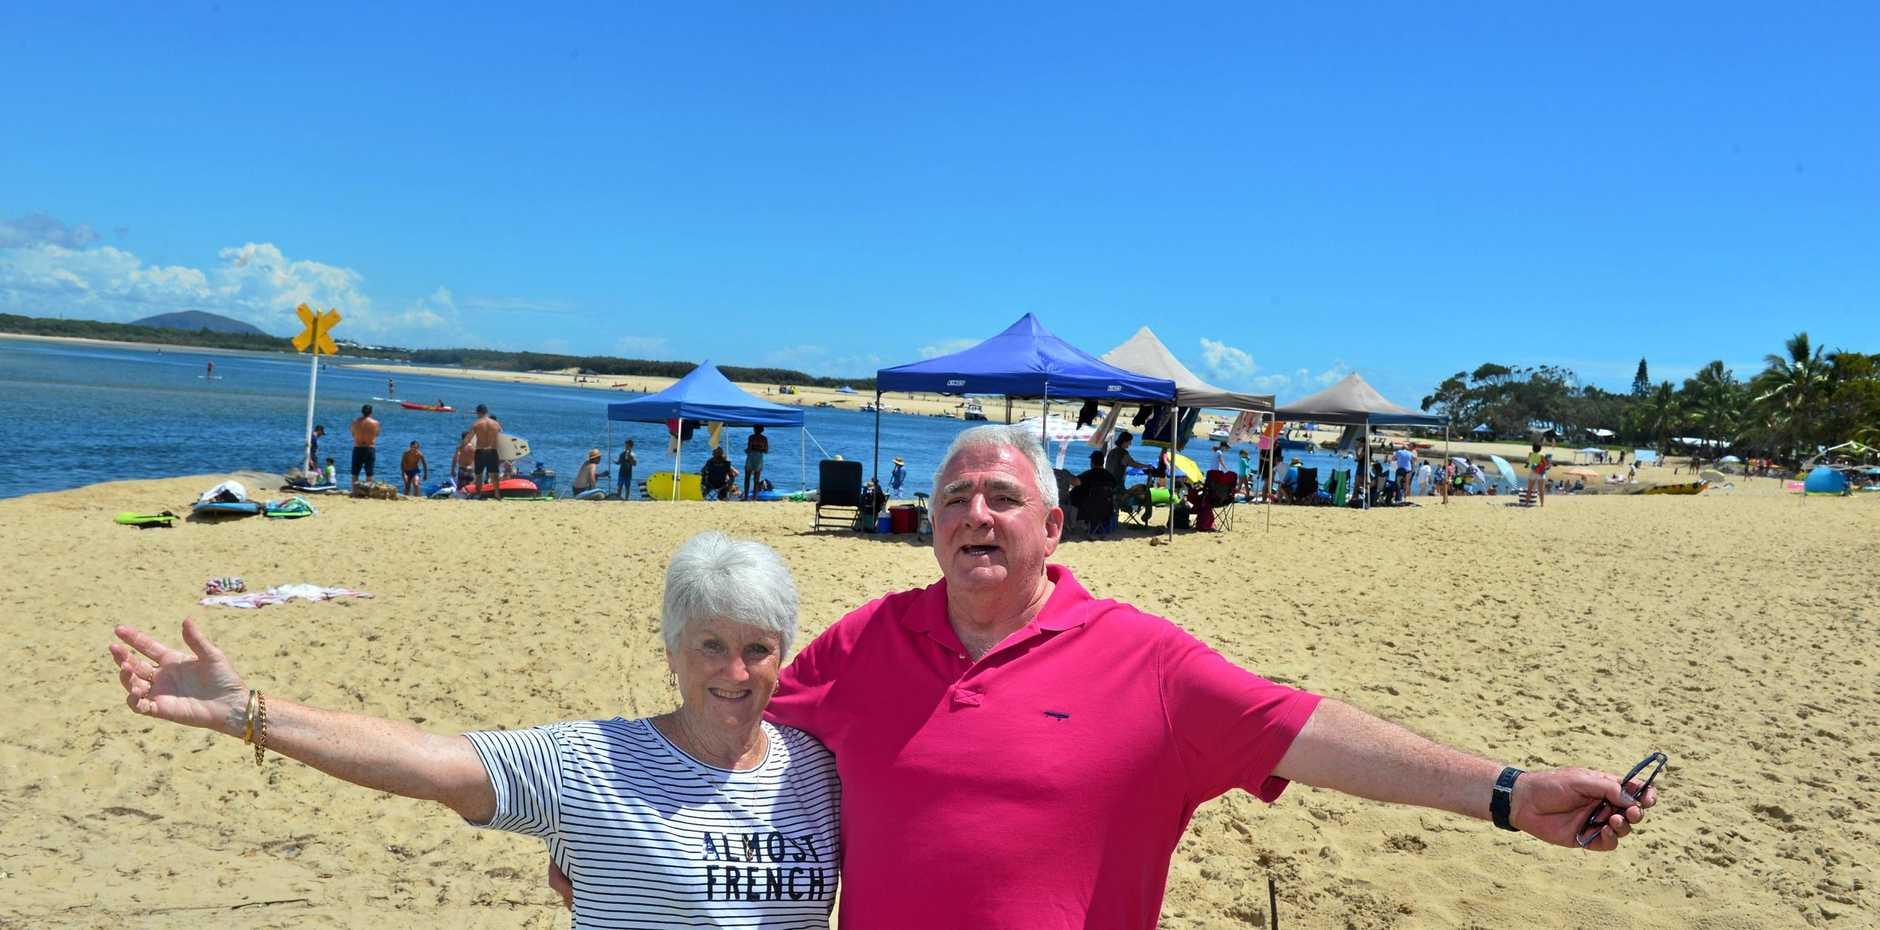 BEST OF BOTH WORLDS: Alan and Gwenda Tudman have had enough of the Australian summer and want to buy a place in Europe so they can escape for a few months.